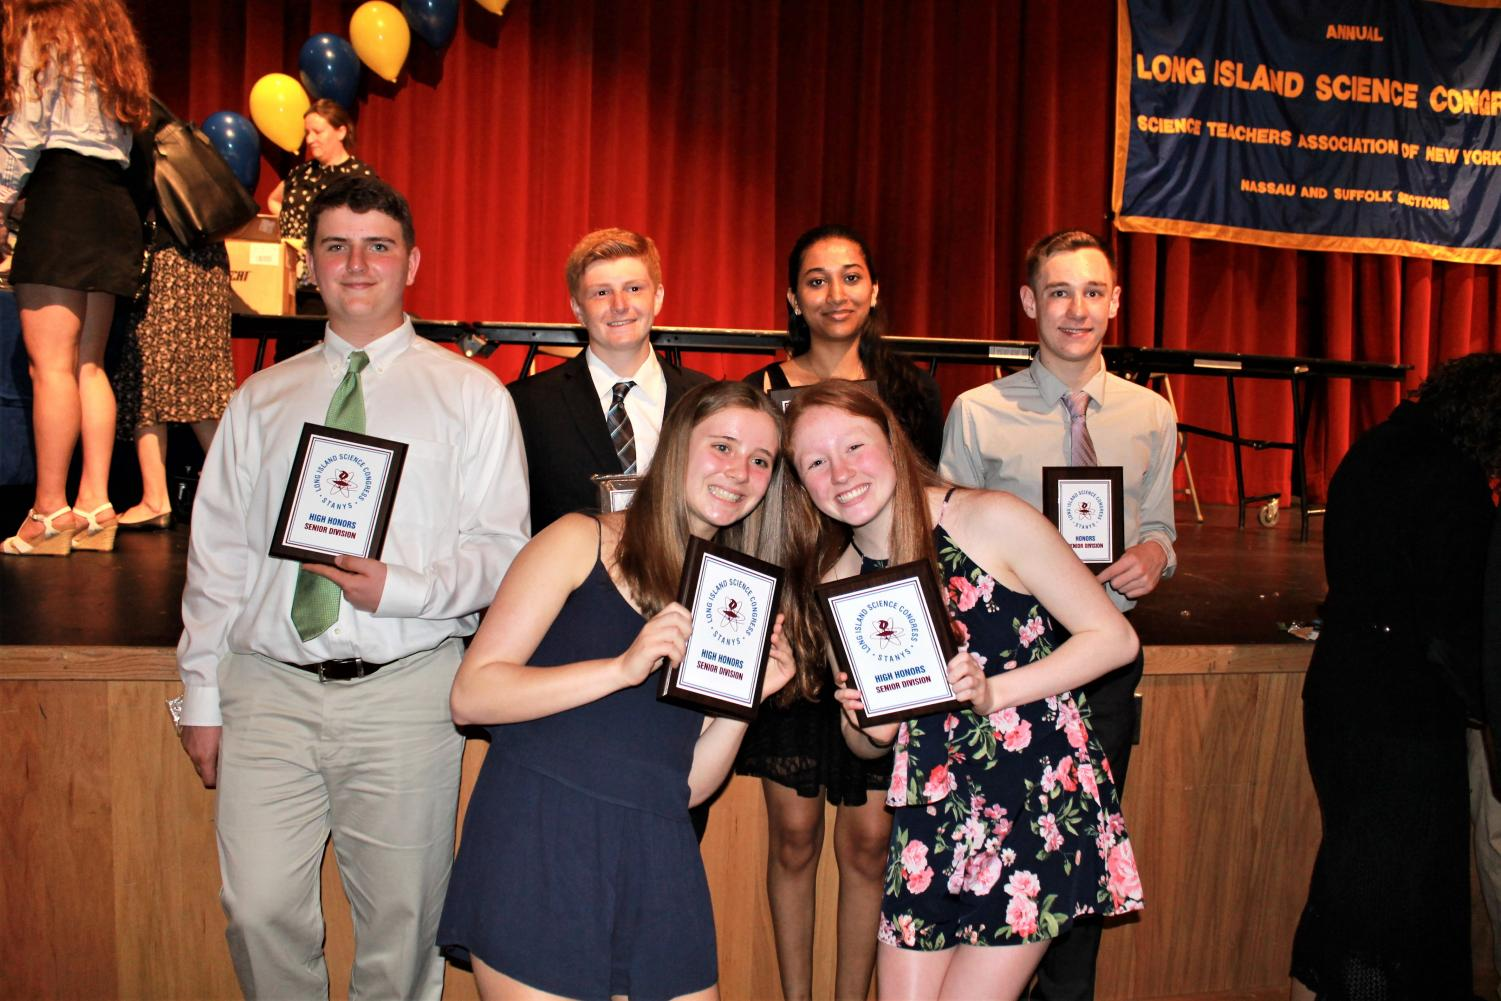 High school researchers with awards at the Long Island Science Congress